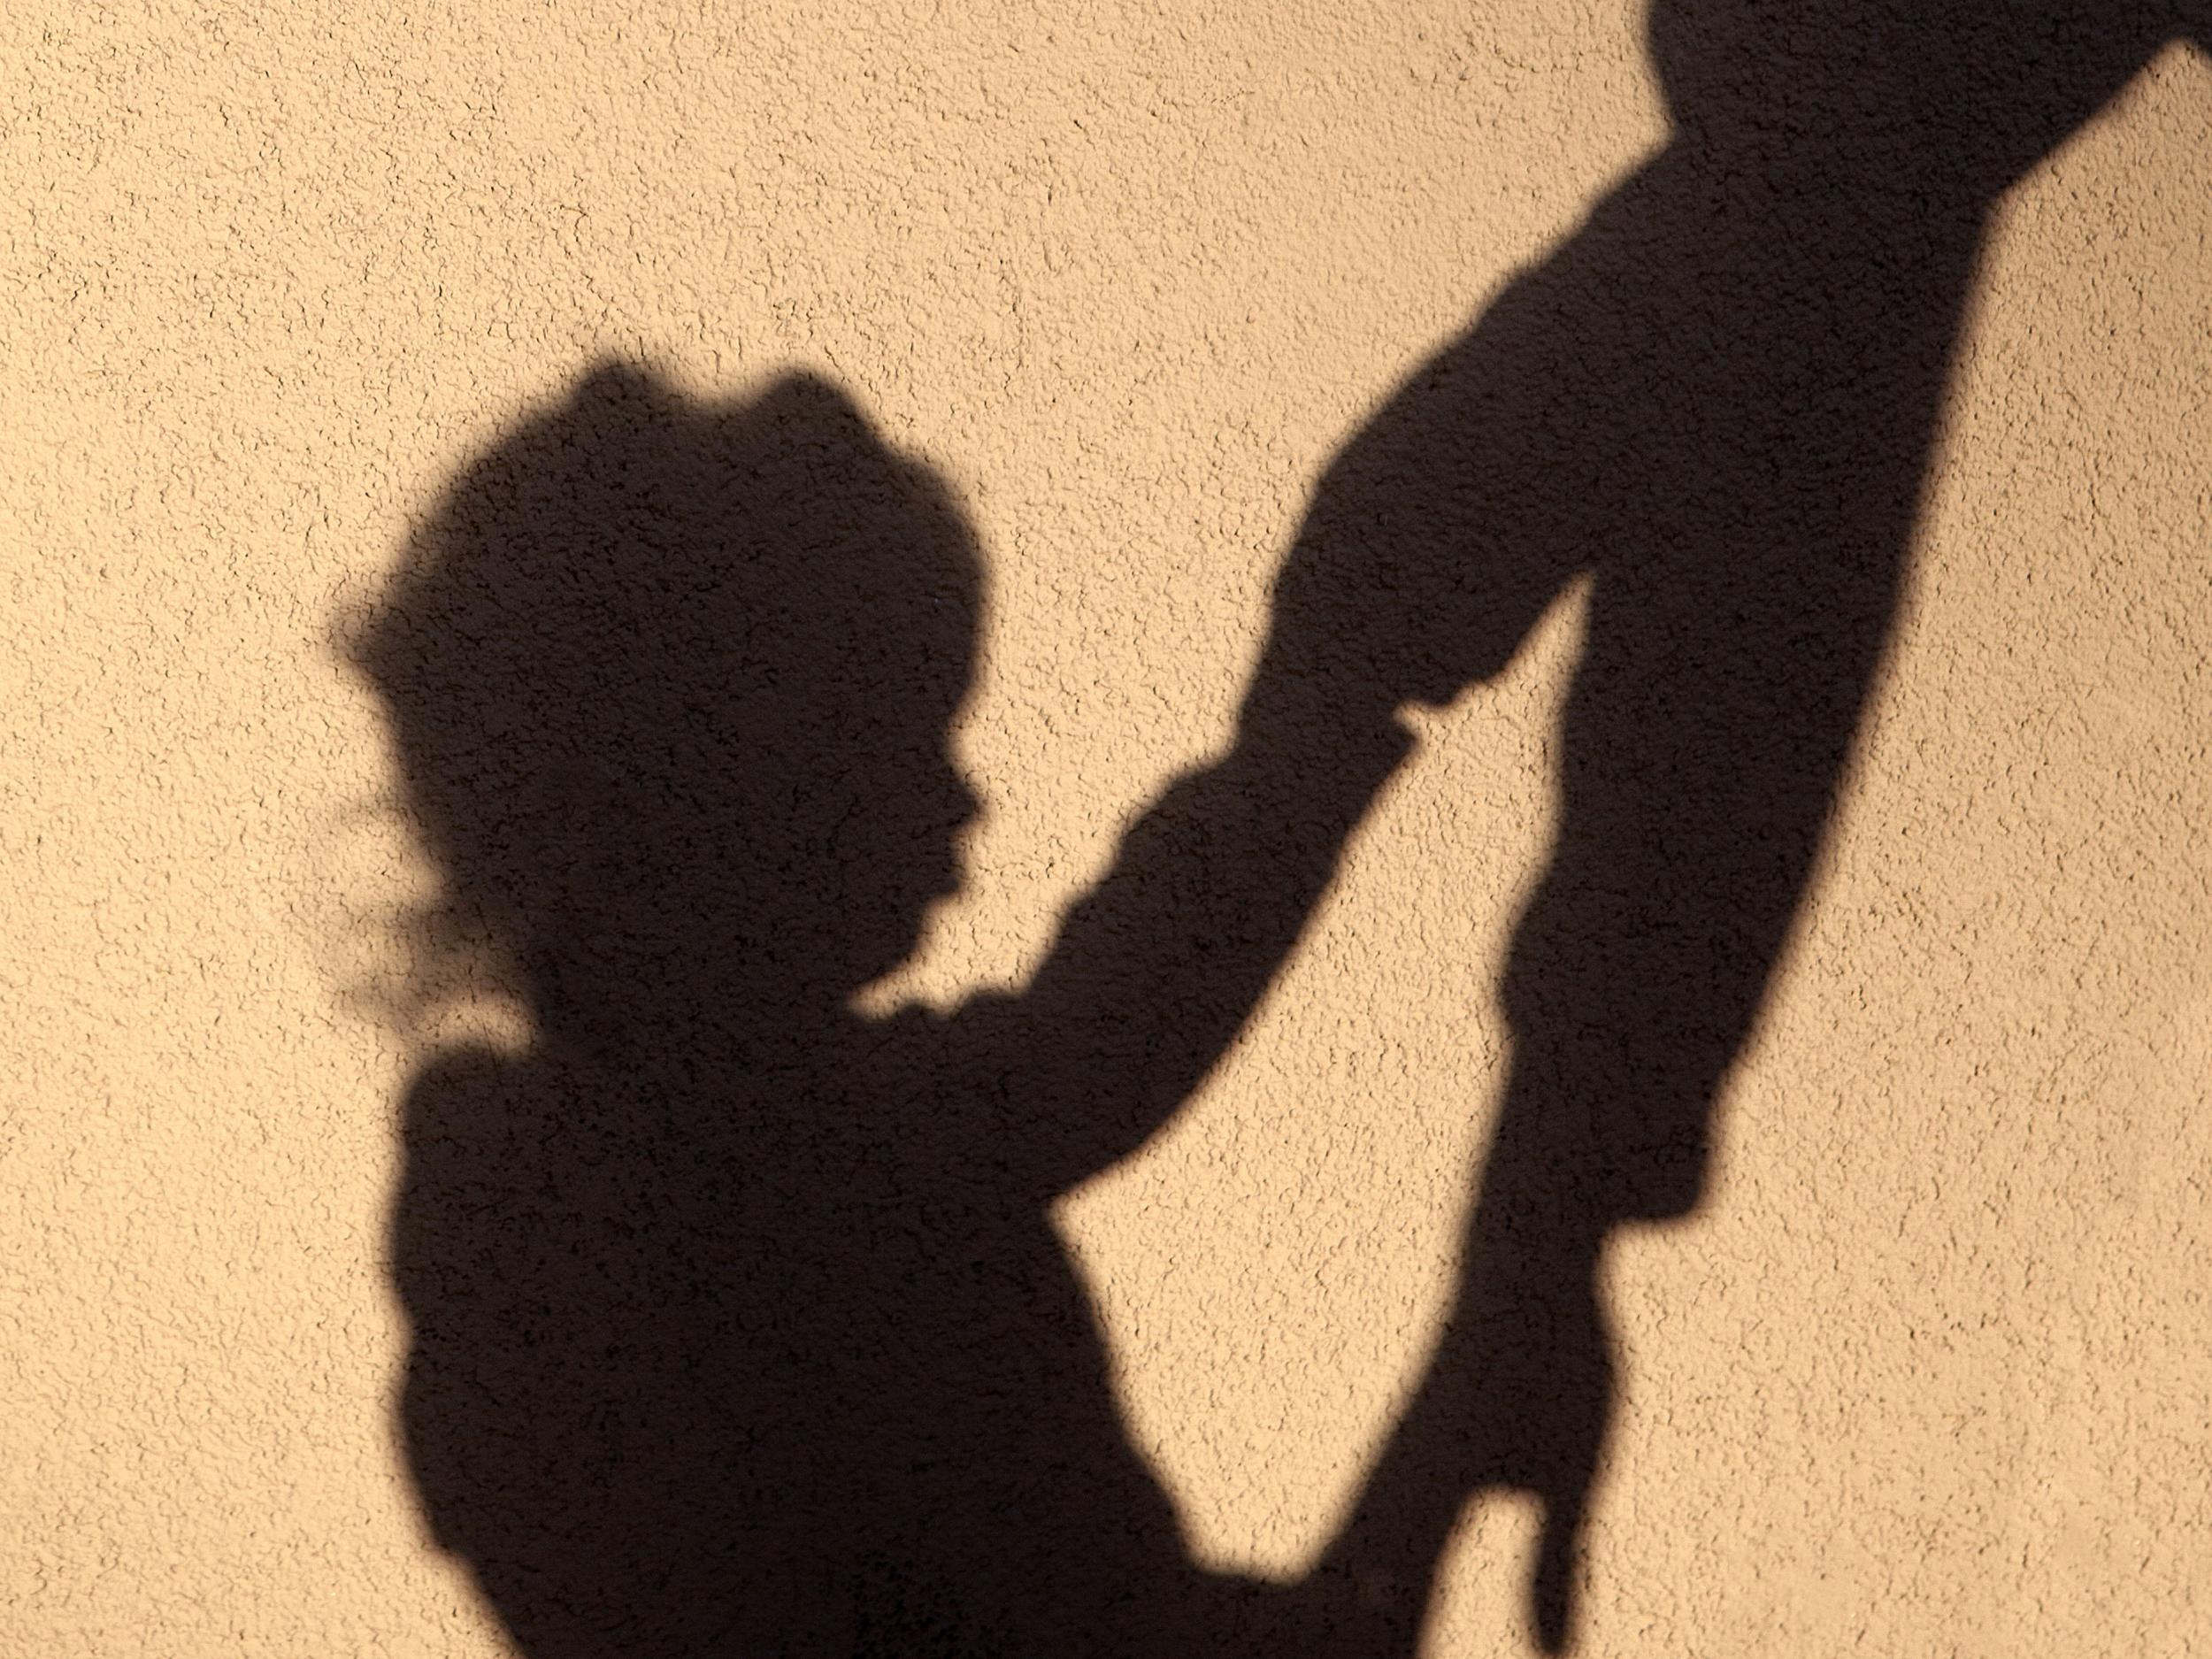 Raped girl delivers baby aged 10 after being denied abortion by Indian Supreme Court